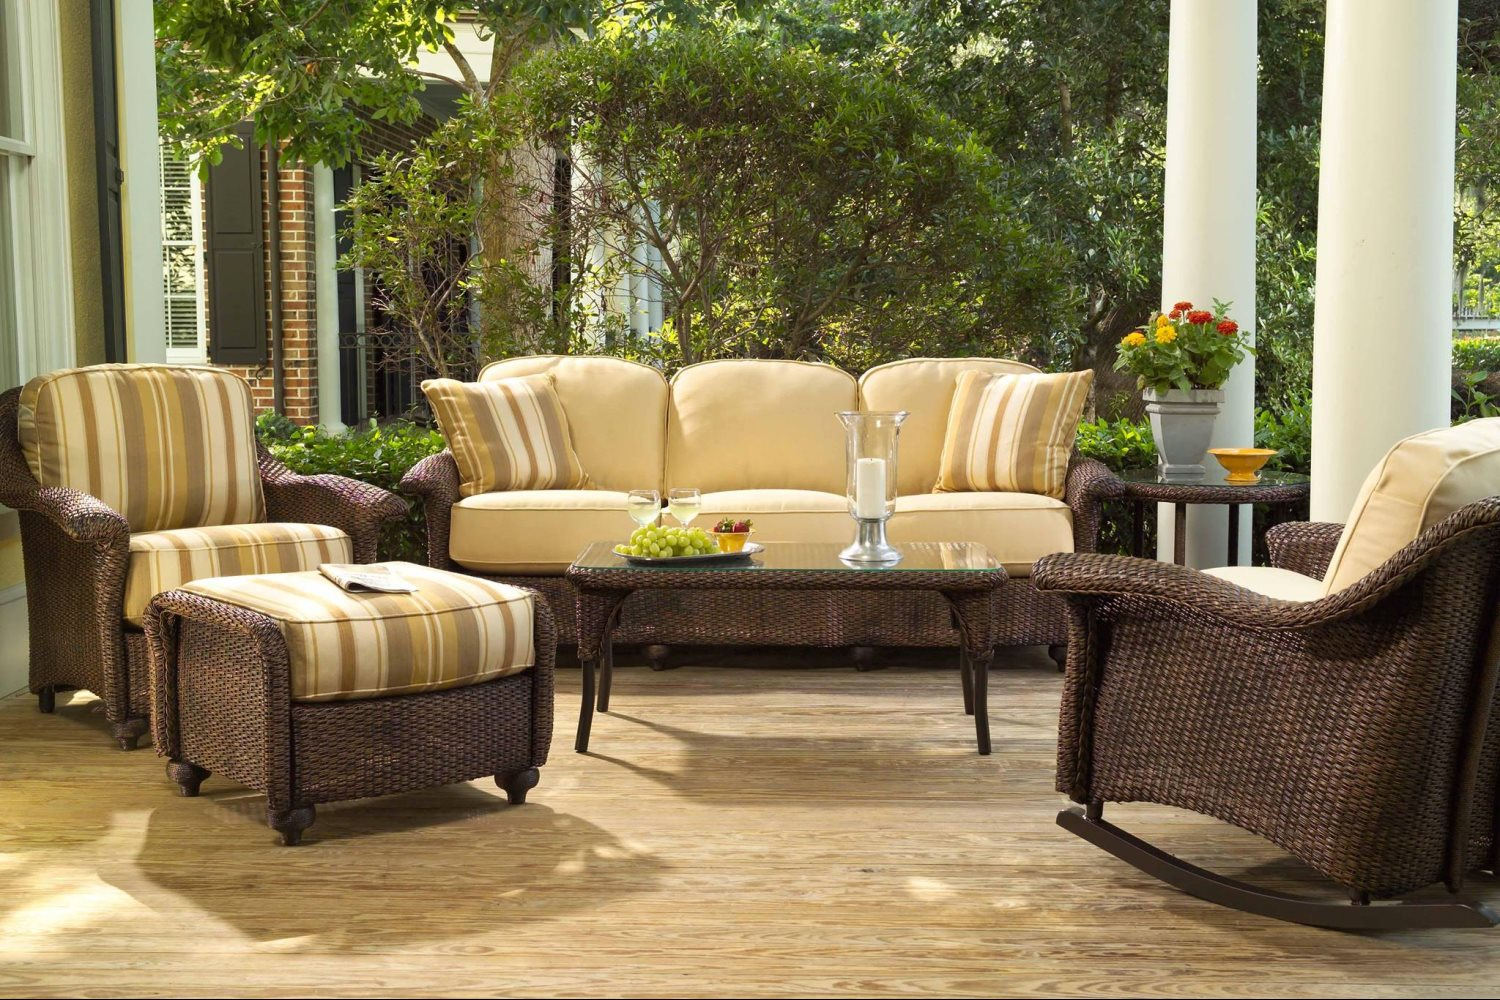 Patio furniture outdoor seating dining patio for Outdoor patio set